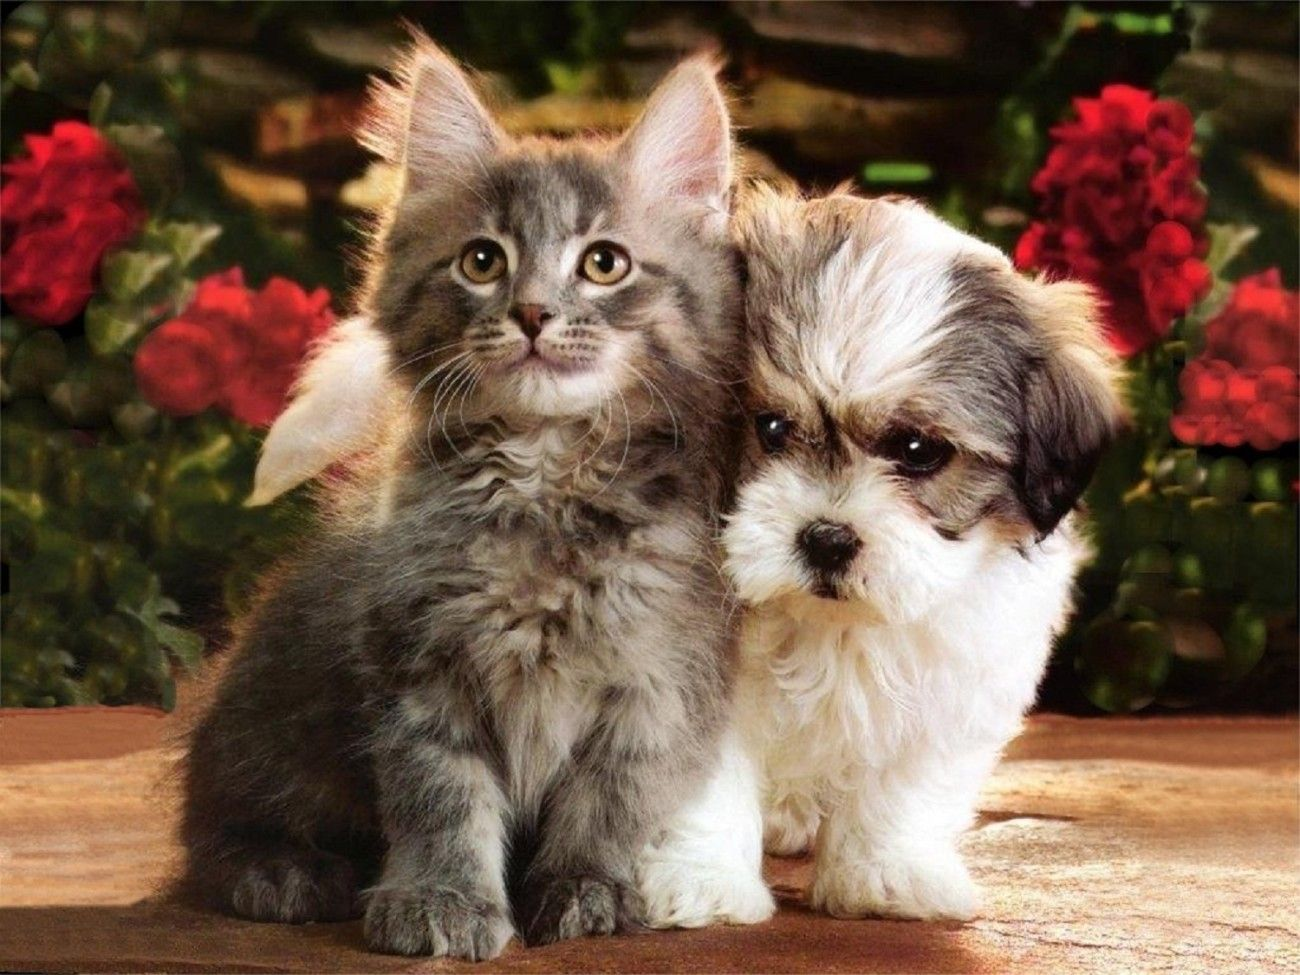 Puppies And Kitten Wallpaper Cute Puppies And Kittens Cute Cats And Dogs Kittens Cutest